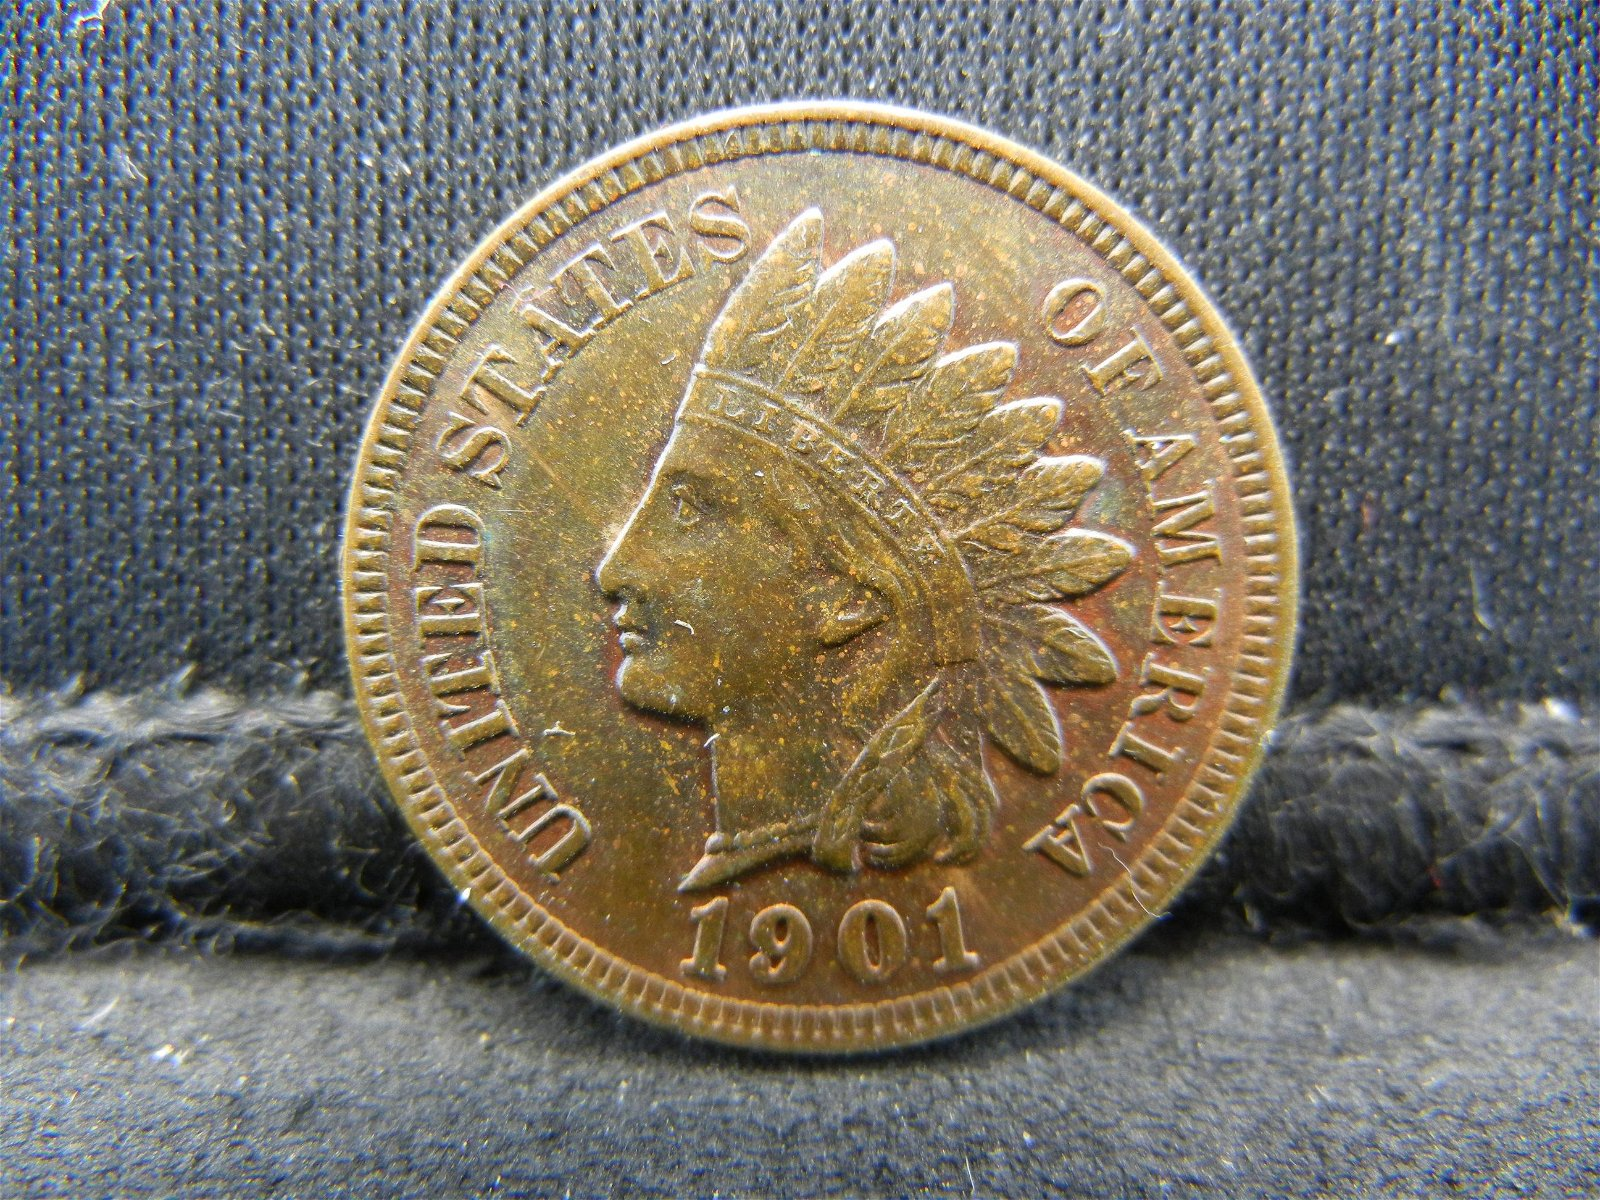 1901 United States Indian Head Penny Cent Higher Grade